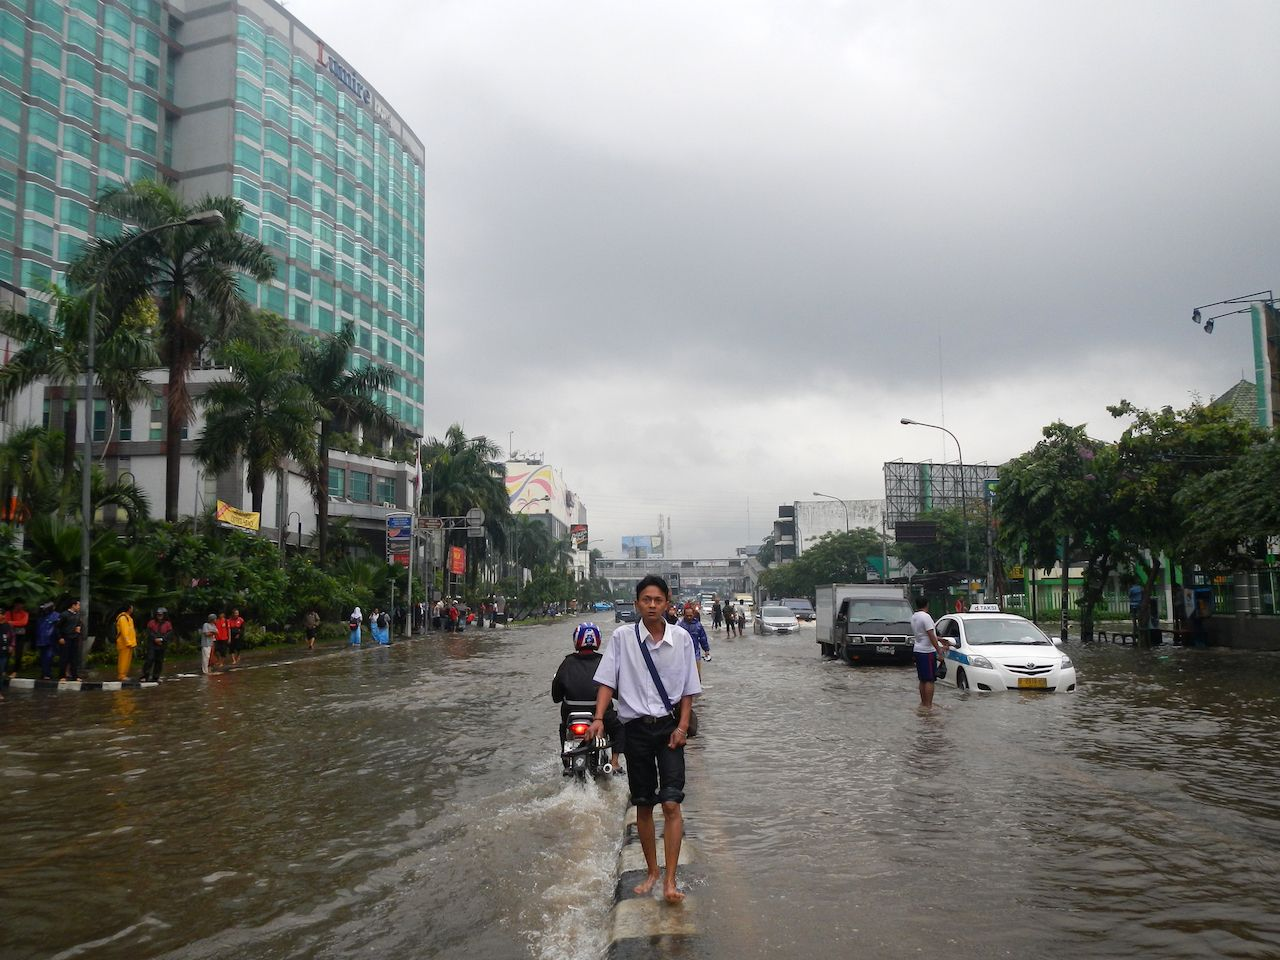 Sinking city: Indonesias capital on brink of disaster